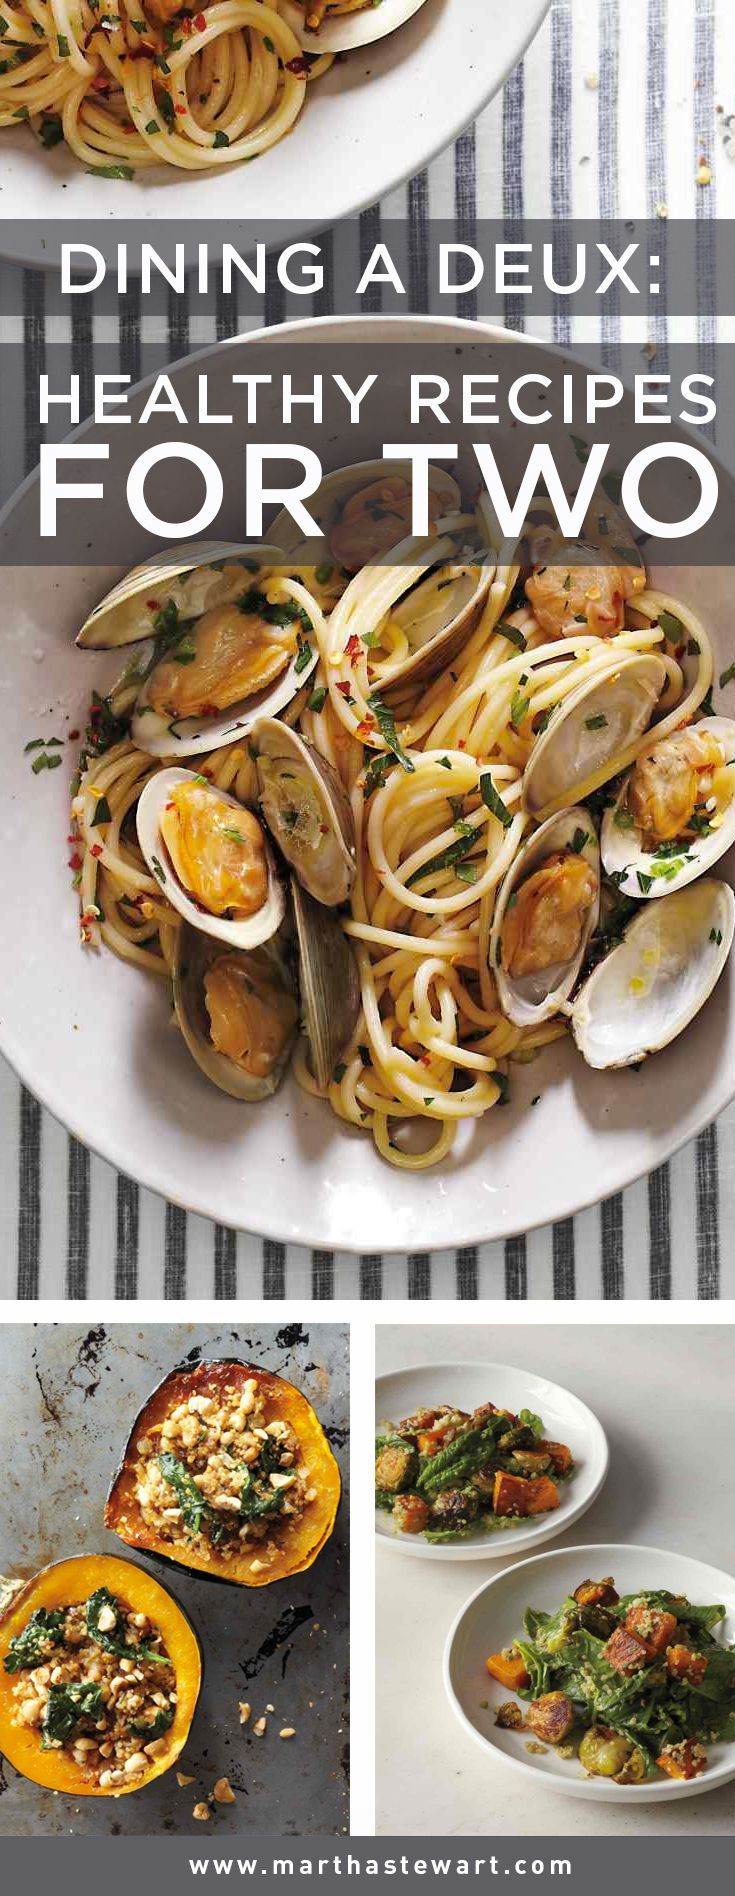 Dining a Deux: Healthy Recipes for Two | Martha Stewart Living - These recipes are healthy and balanced, simple and (mostly) quick, delicious and memorable -- they do it all for two.